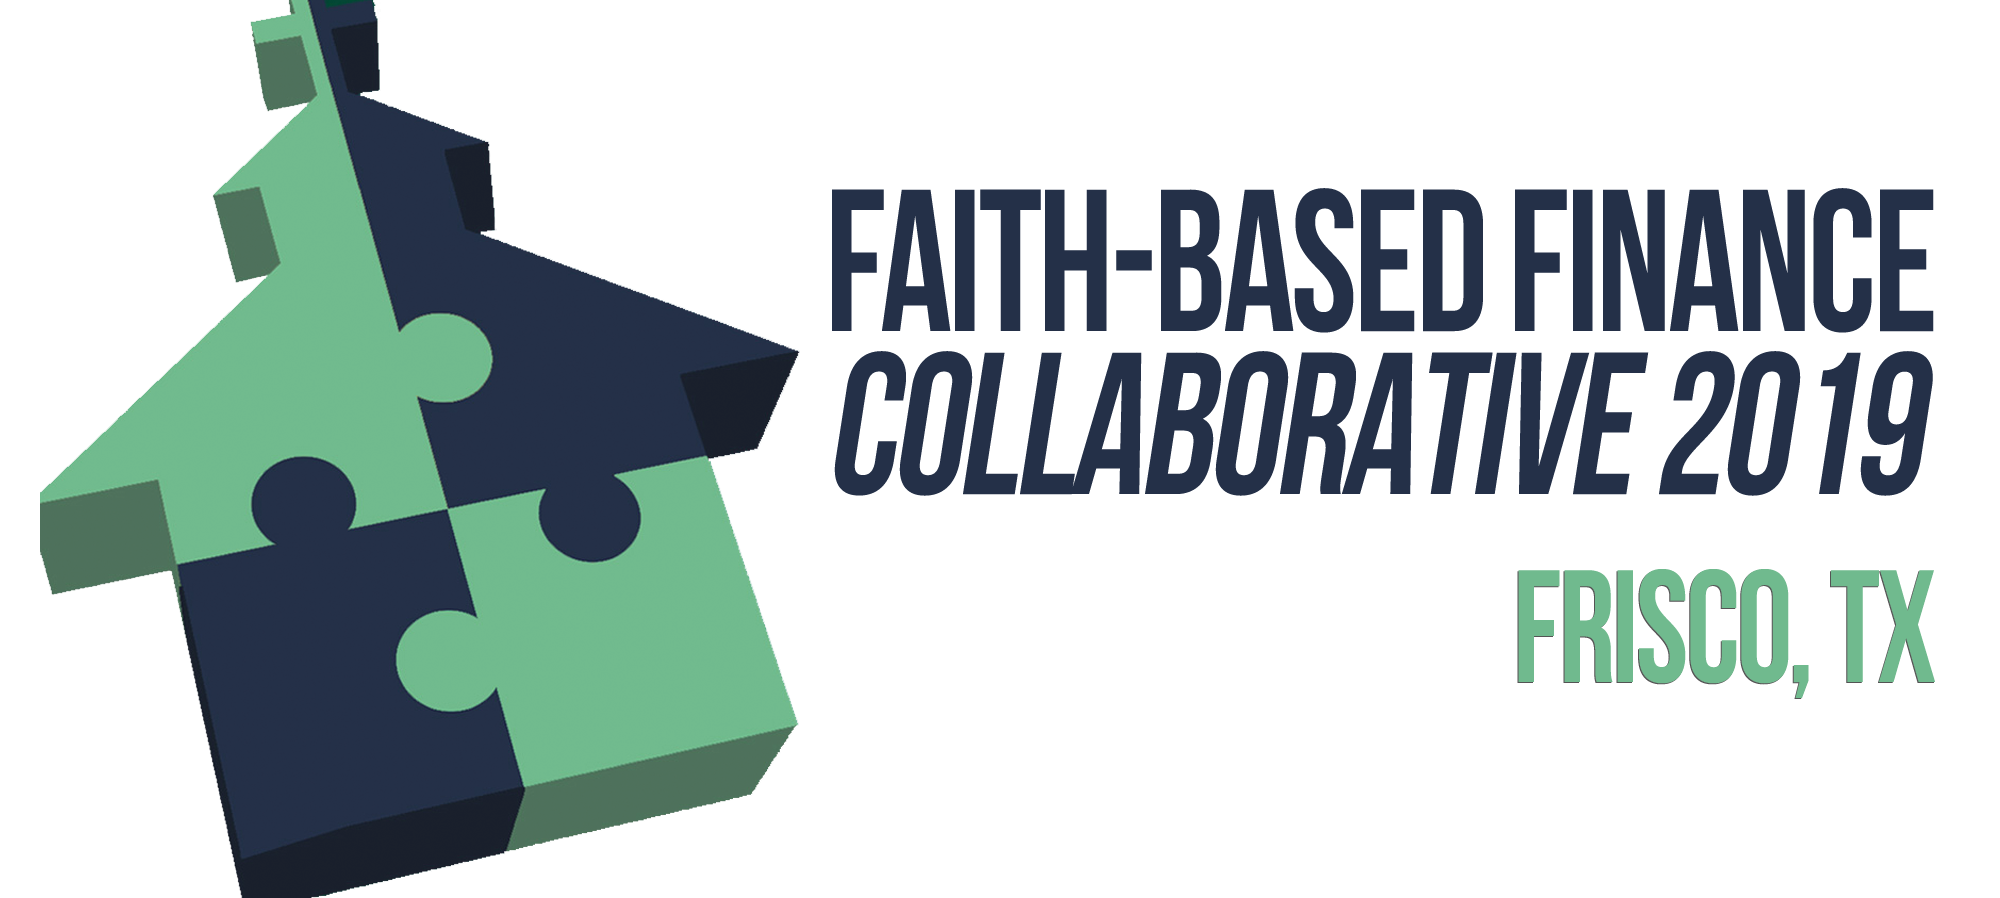 AcctTwo to Host Fourth Faith-Based Finance Collaborative Conference